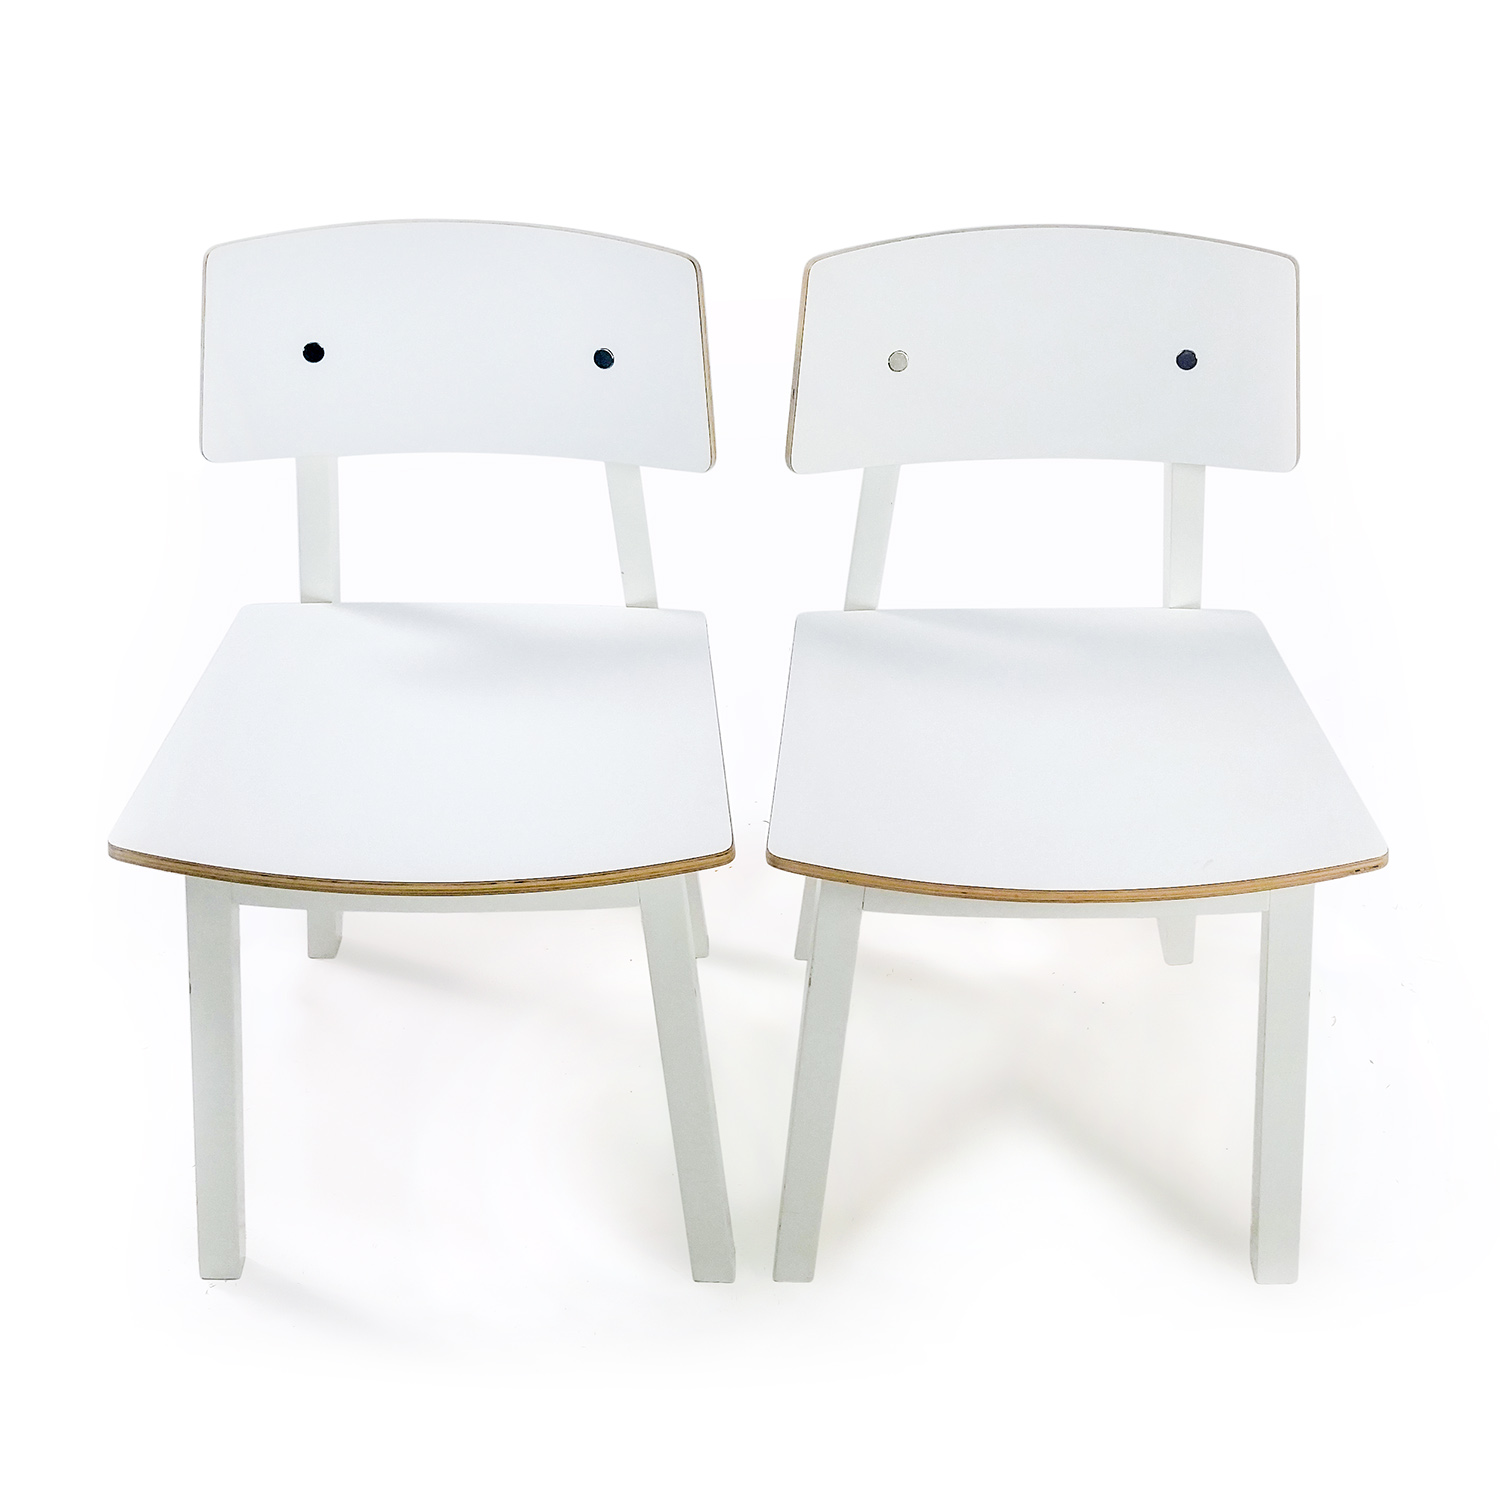 51 off ikea ikea tobias ghost chair chairs